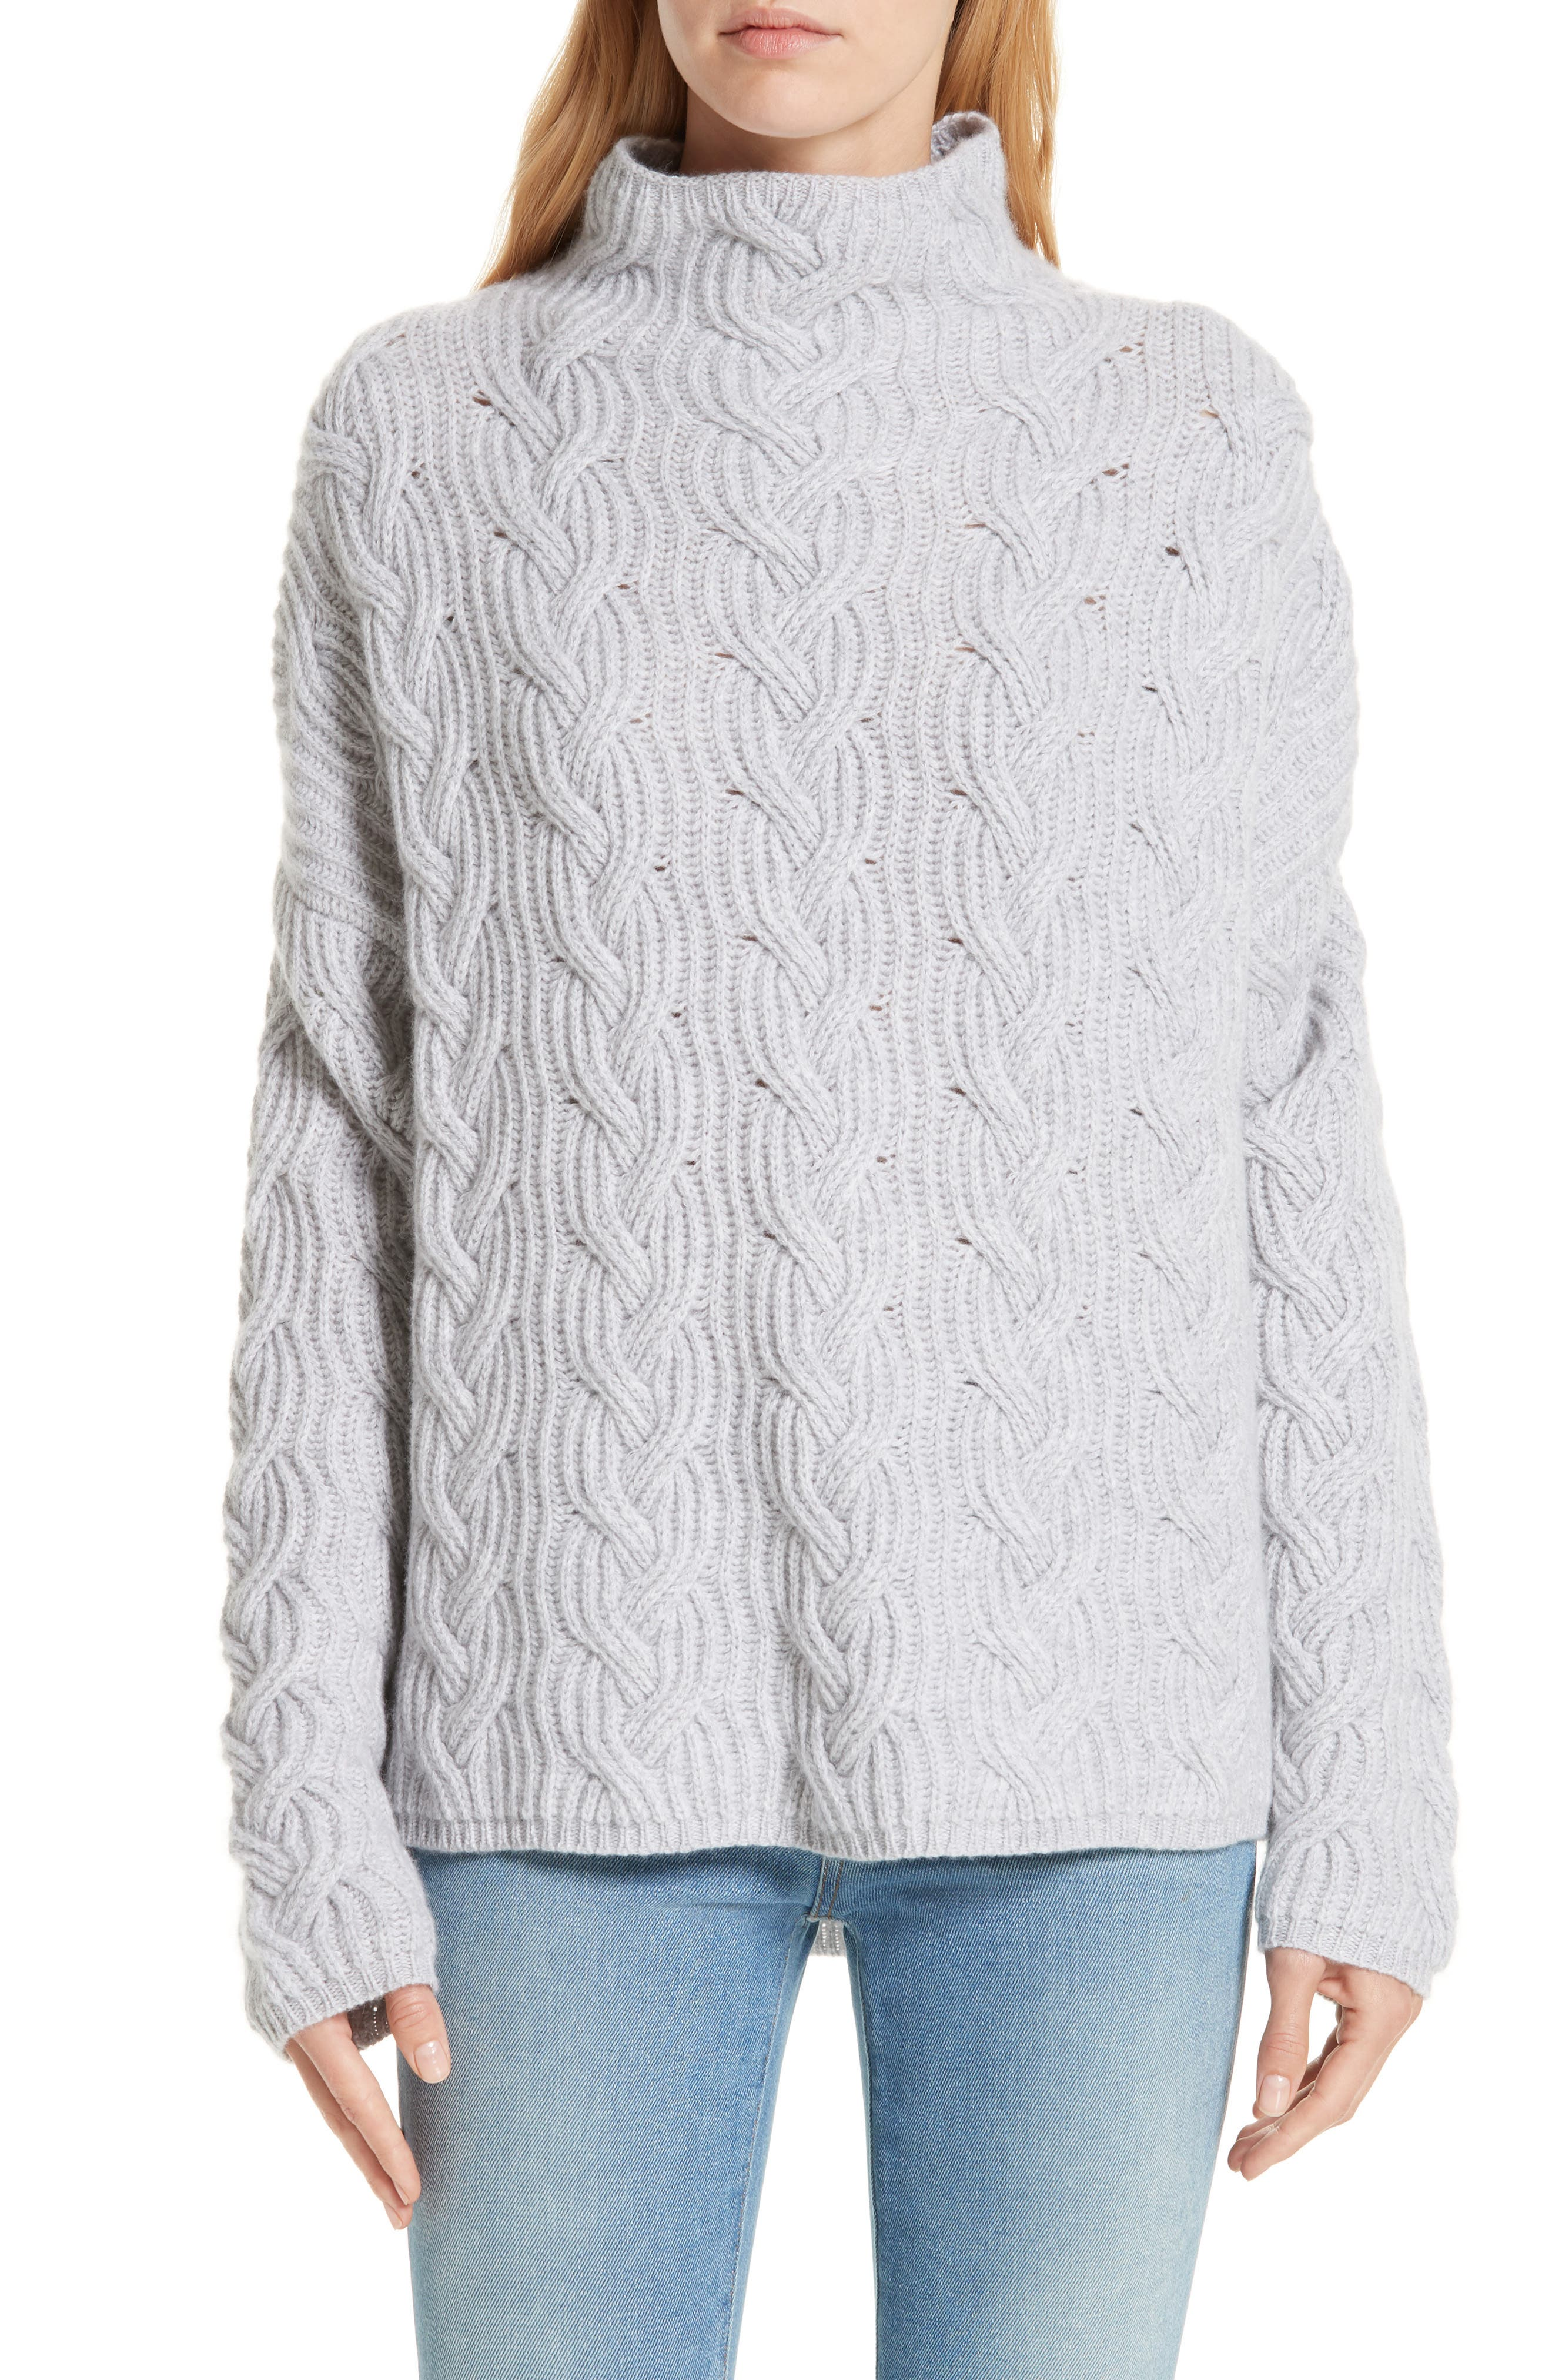 Cable Cashmere Knit Sweater,                             Main thumbnail 1, color,                             050